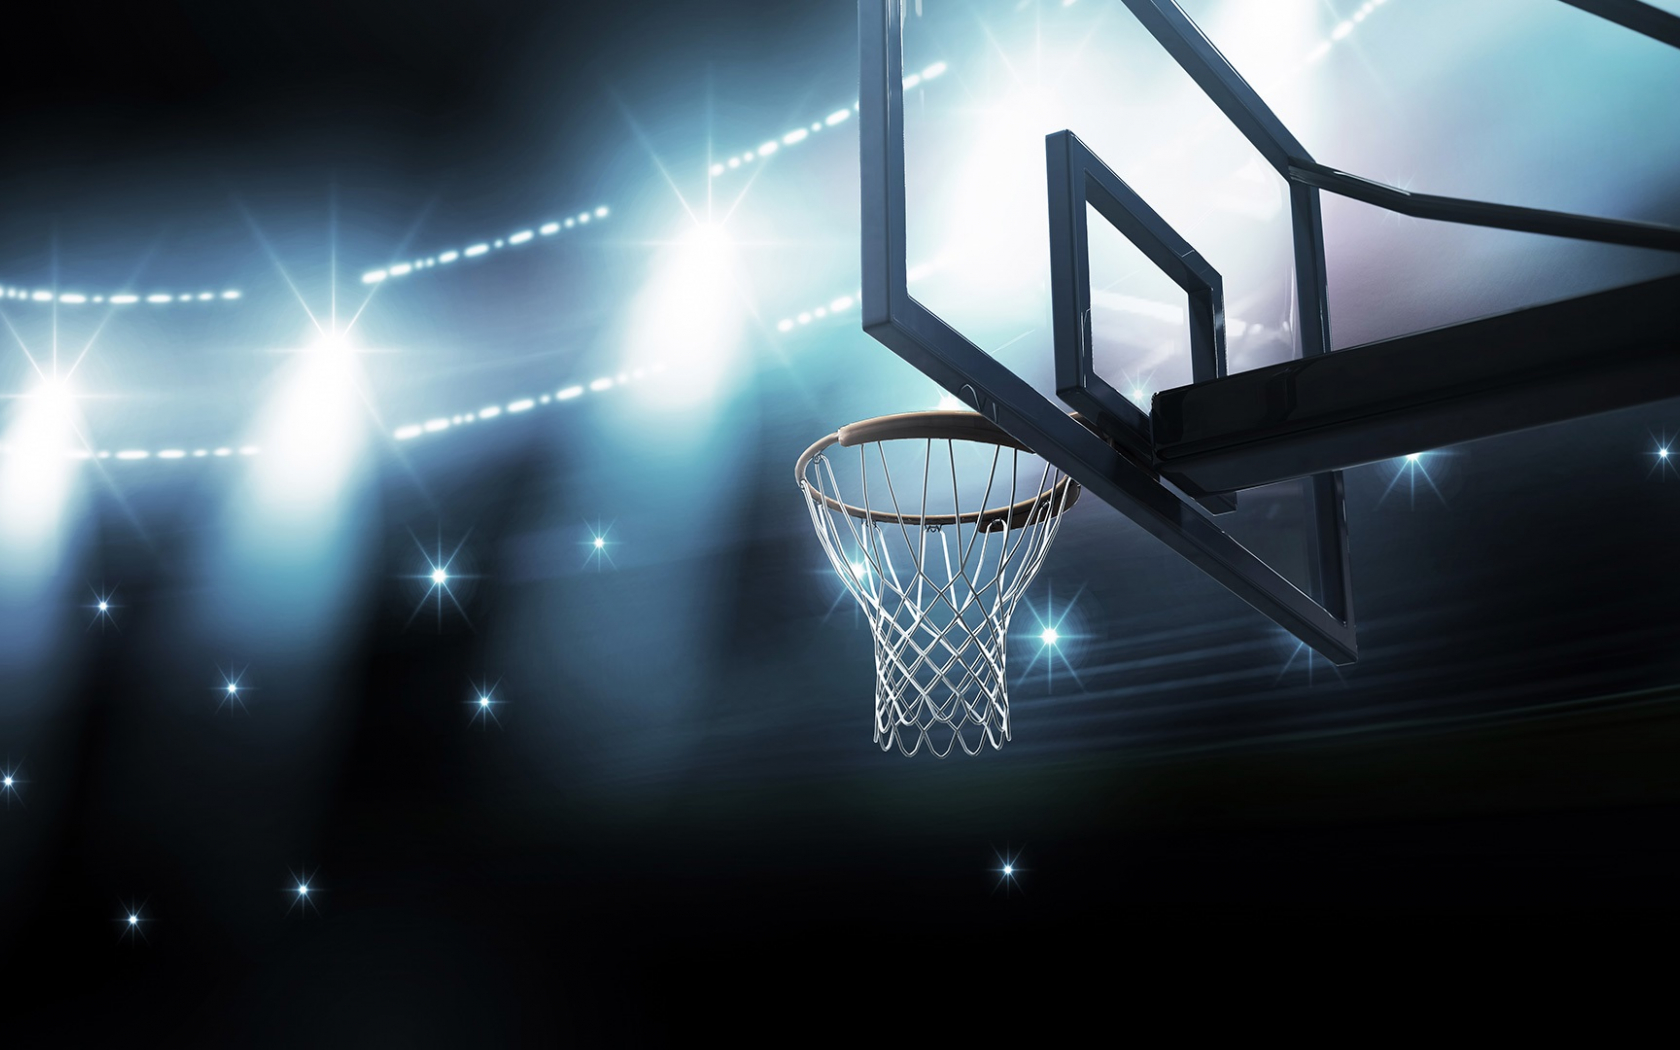 Free Download Basketball Wallpaper Hd Collection 1920x1080 For